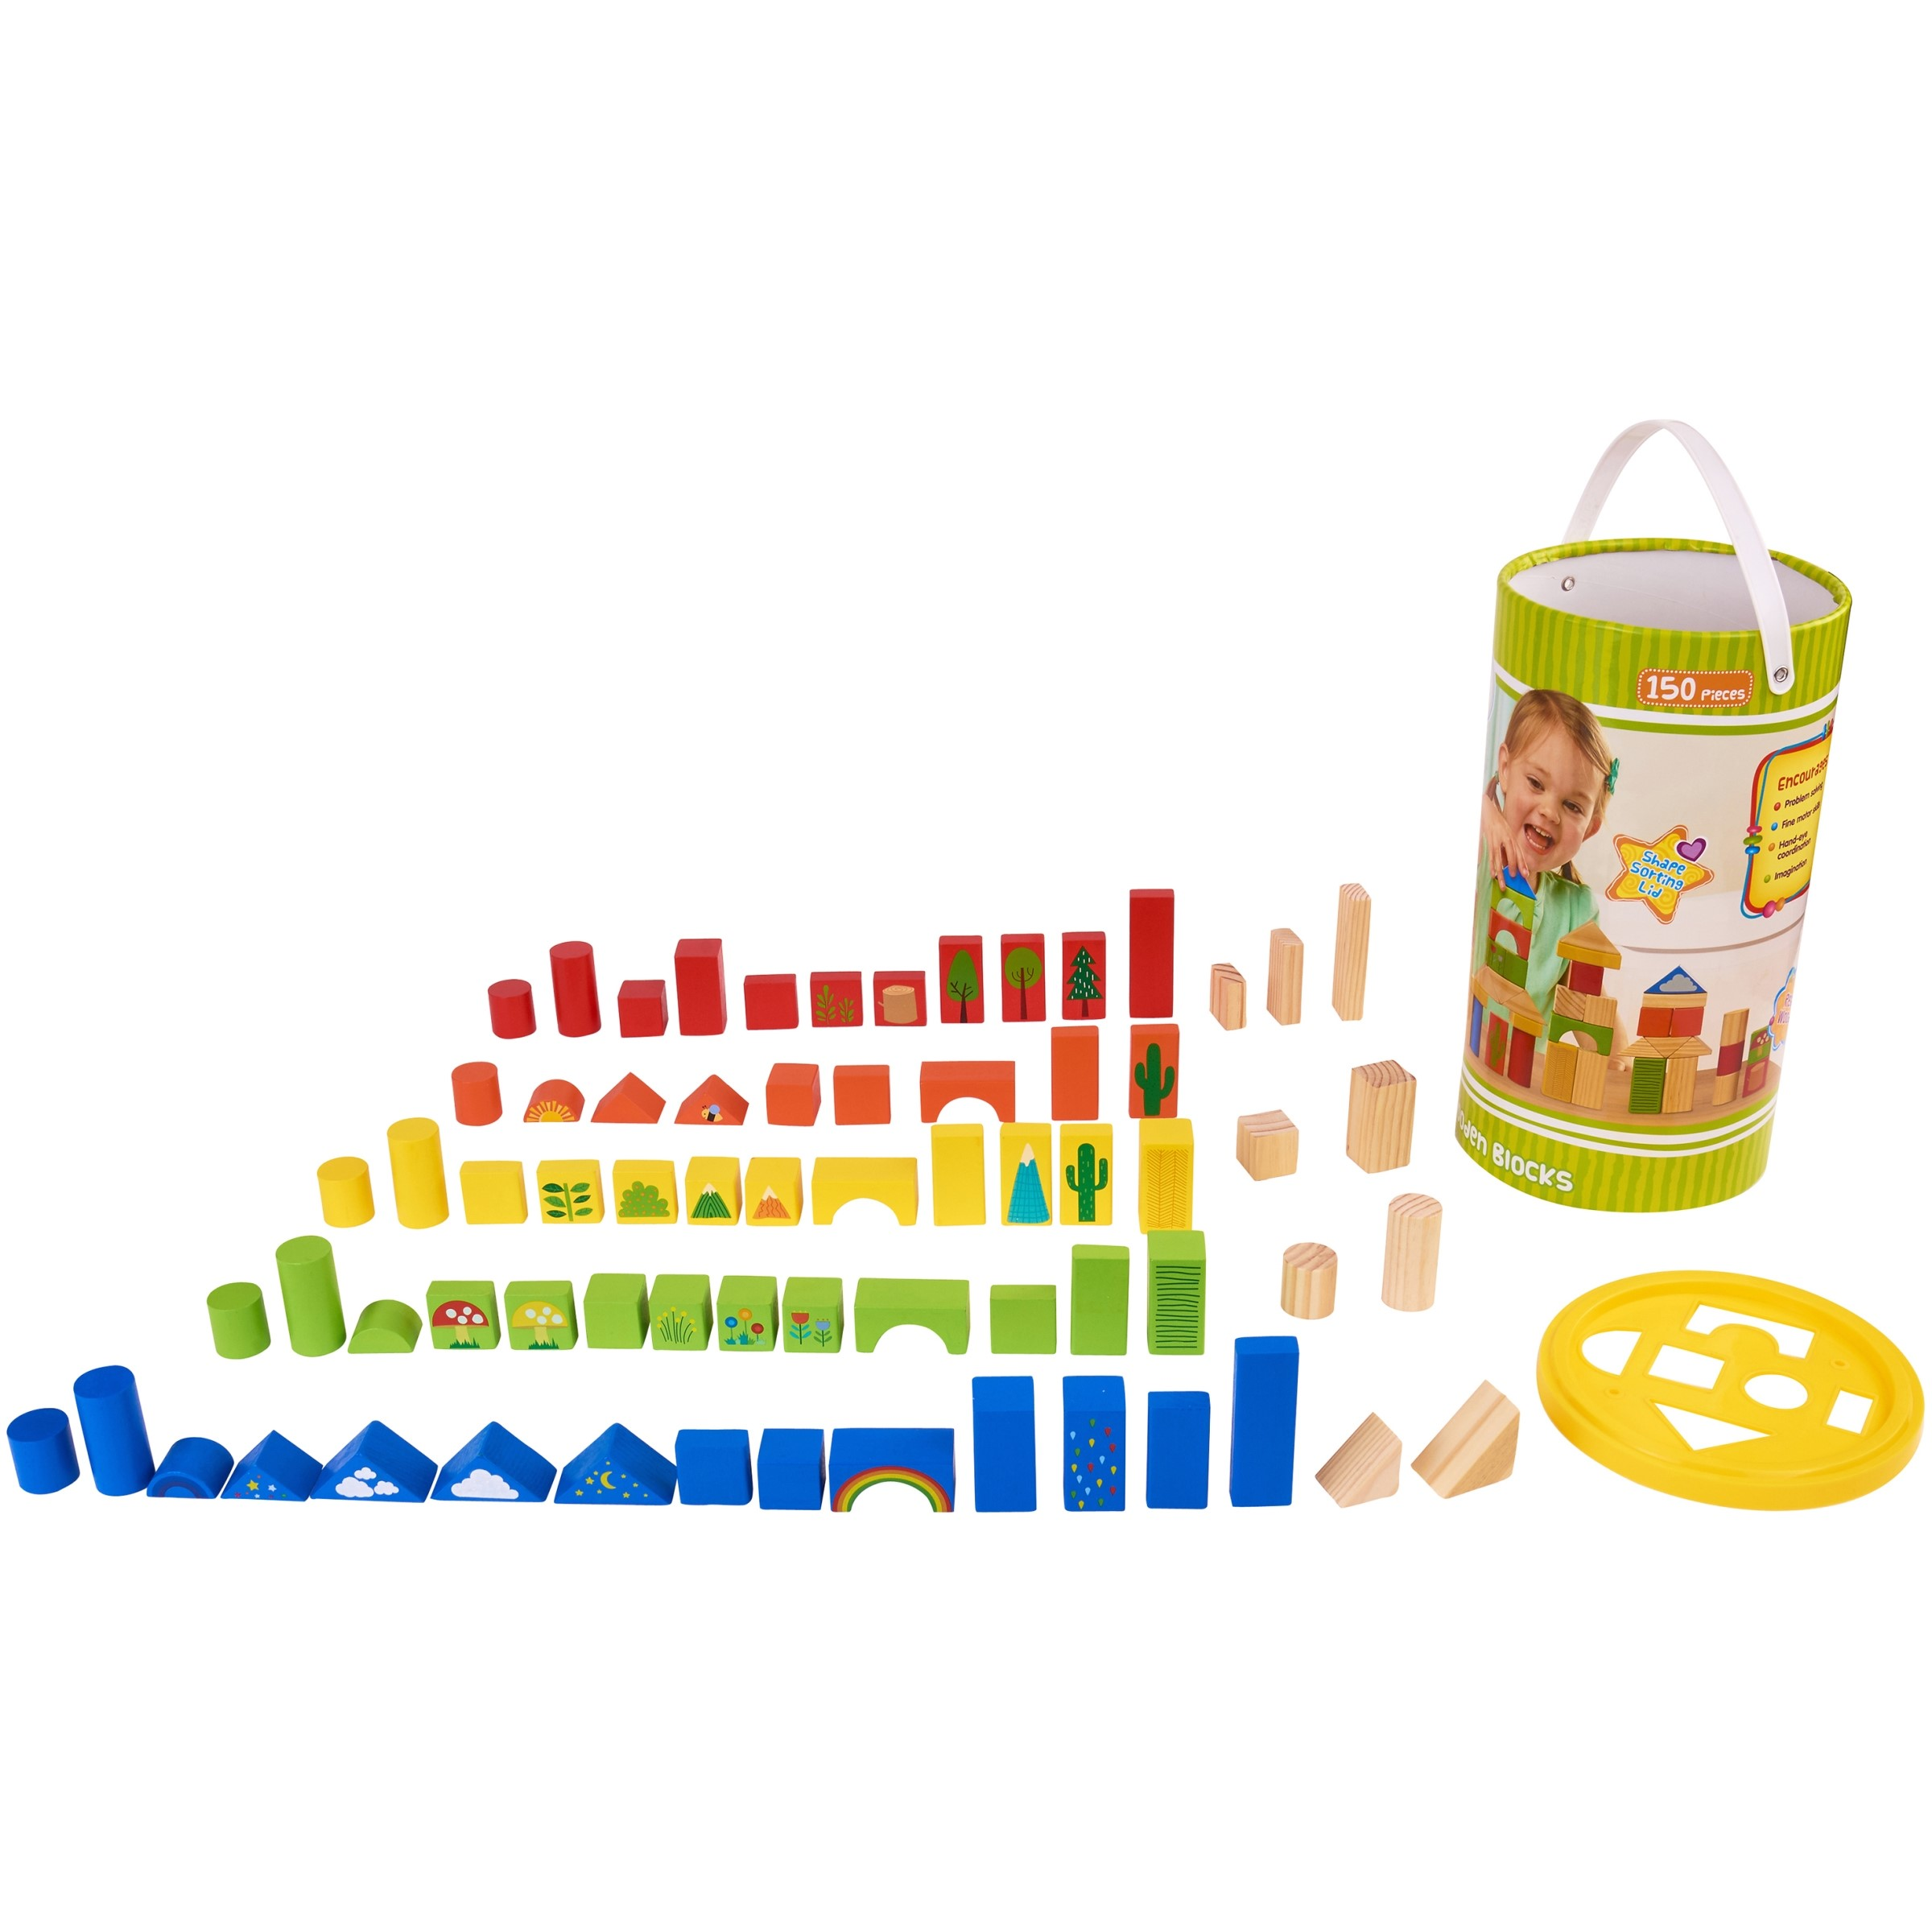 Spark .Create. Imagine. 150-Piece Wooden Blocks Set, Designed for Ages 24 Months and Up